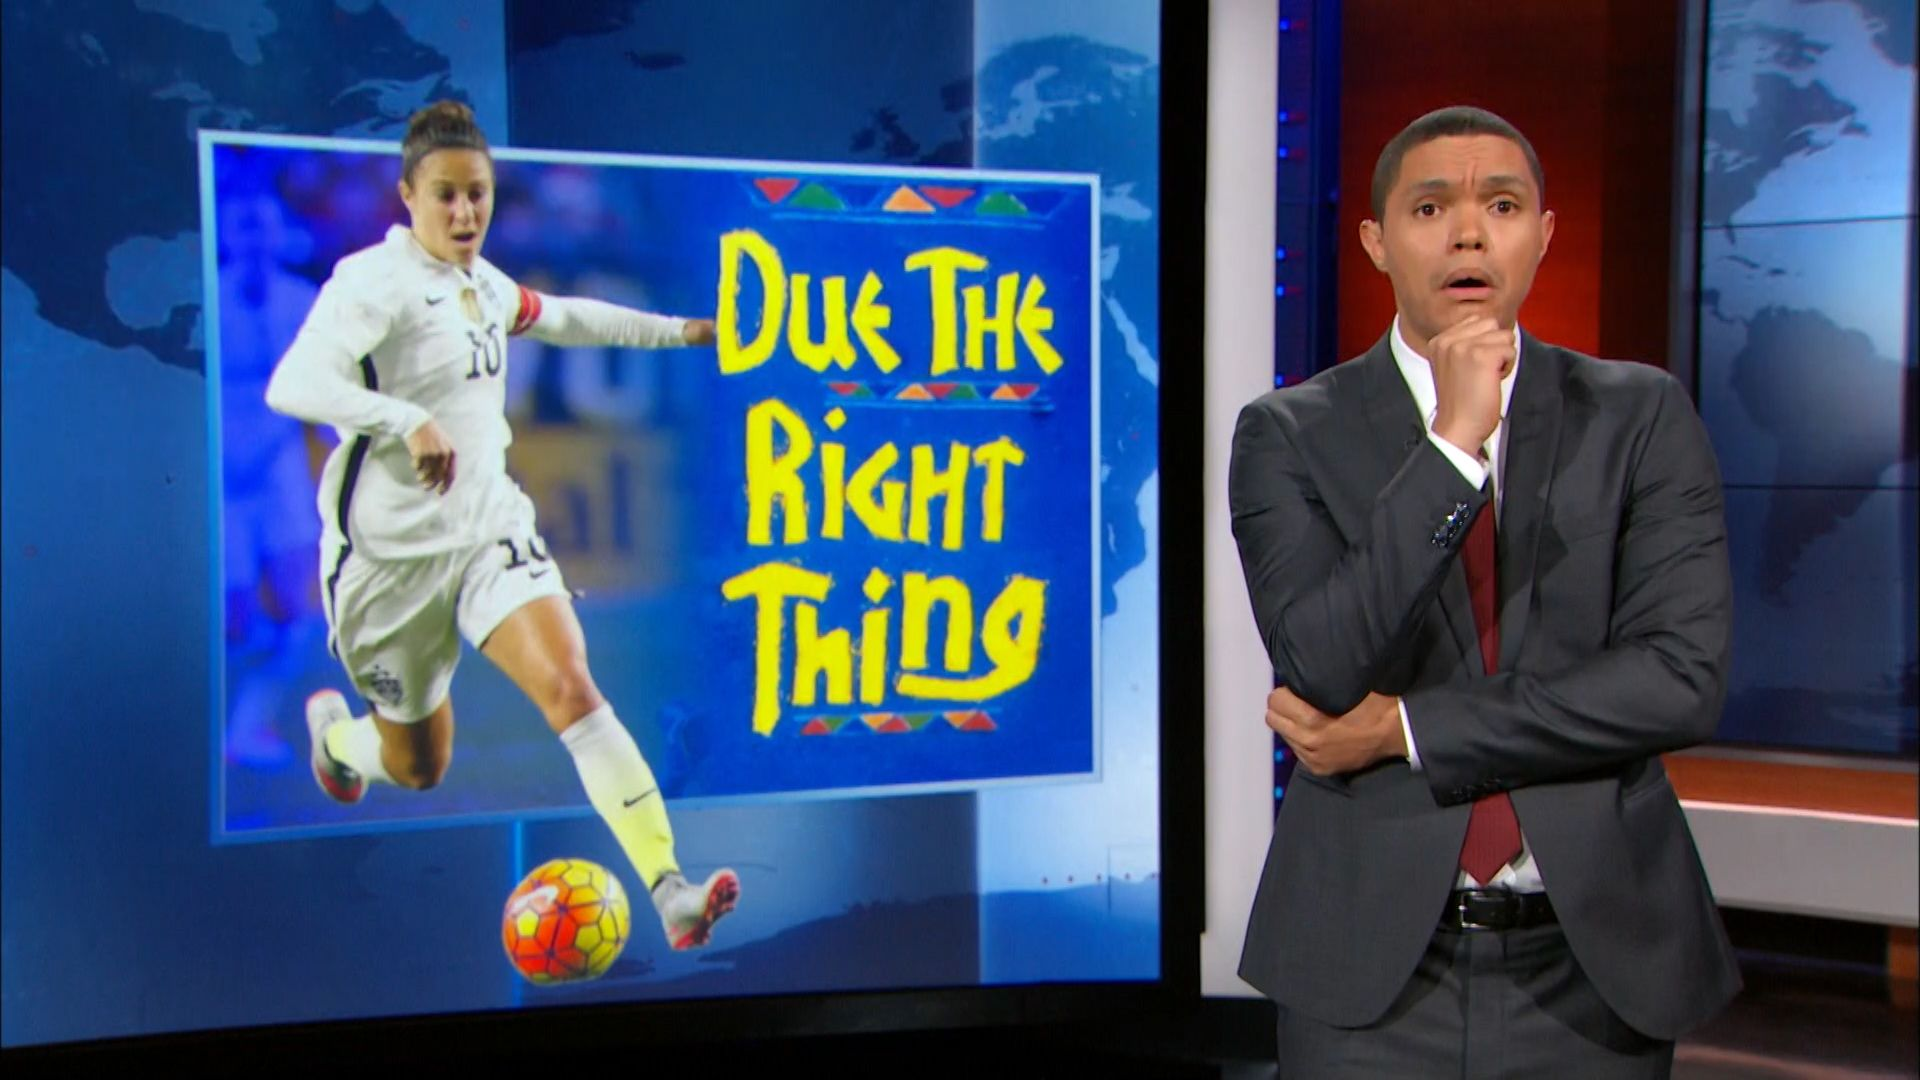 Sexism on the Soccer Field - The Daily Show with Trevor Noah (Video Clip)